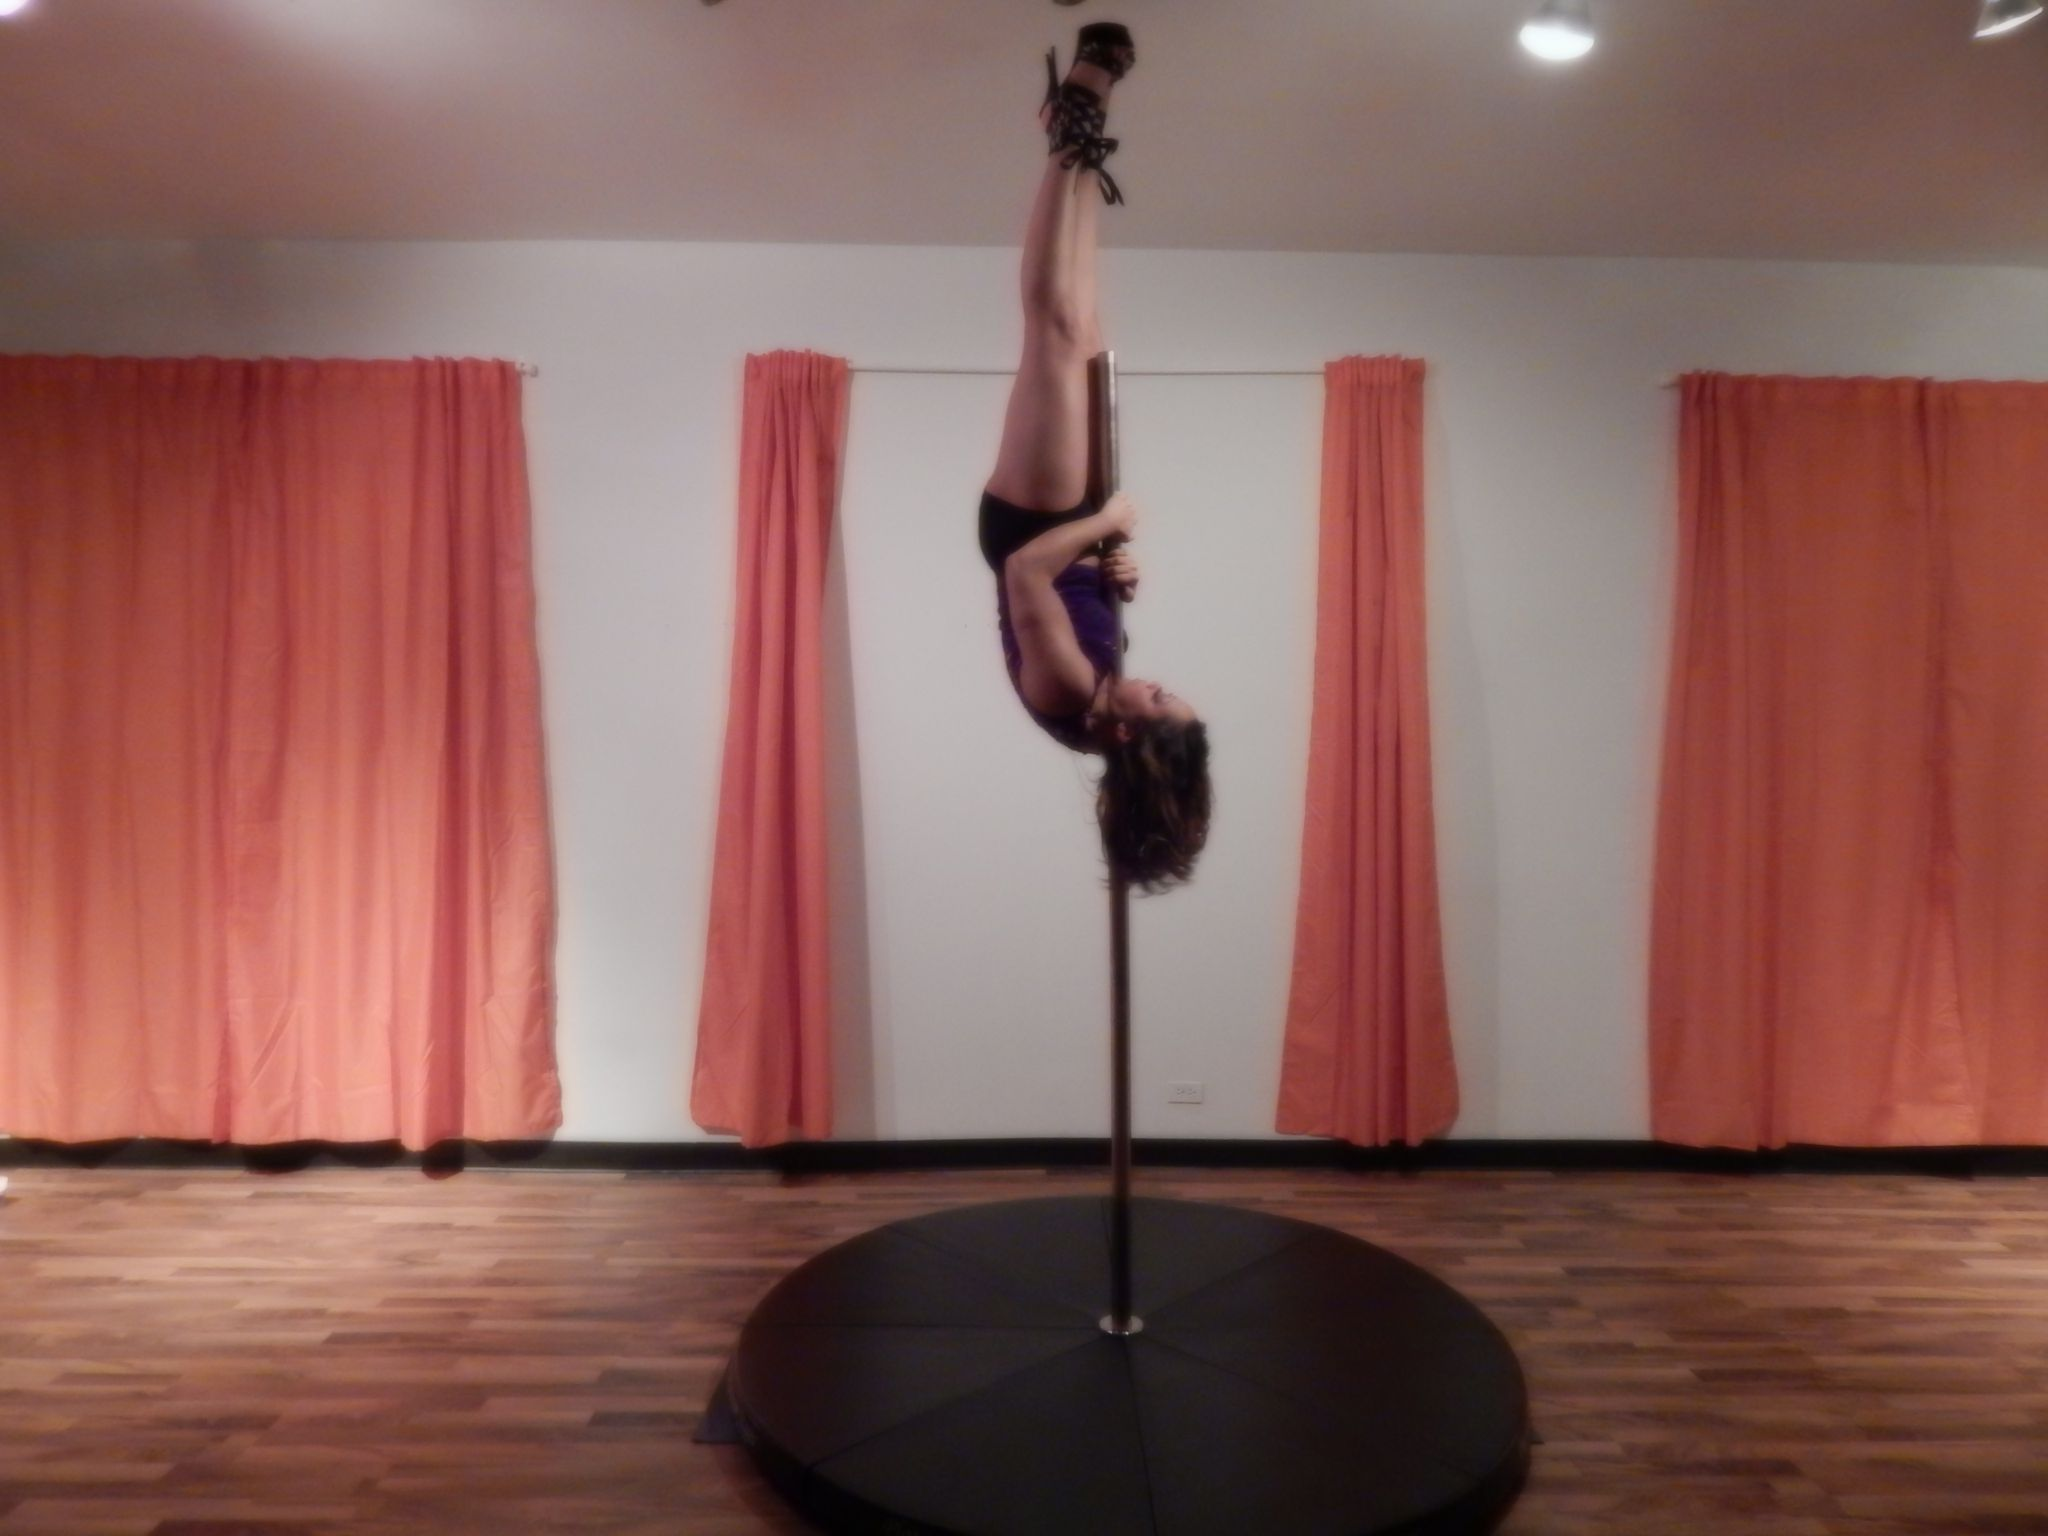 House Of Luxurieux In Farmington Hills Mi Sensuality Dance Chair Dance And Pole Dance Classes Find Us On Mindbo With Images Pole Dancing Pole Dancing Classes Farmington